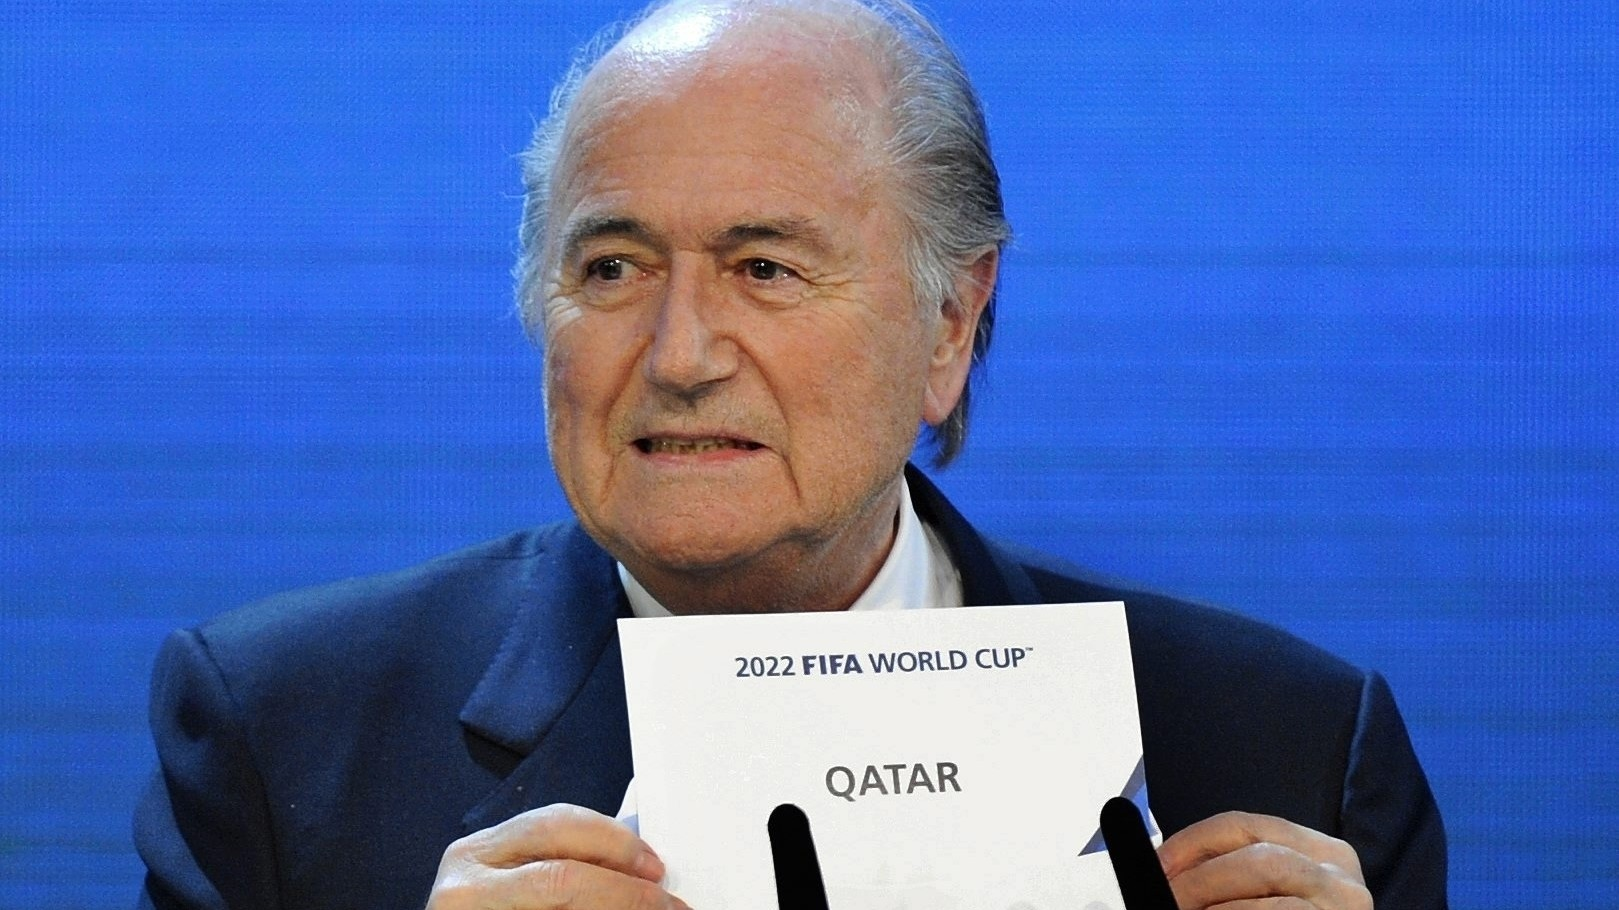 The Five-Year Anniversary Of The Baffling 2022 World Cup Vote, The Beginning Of FIFA's Reckoning